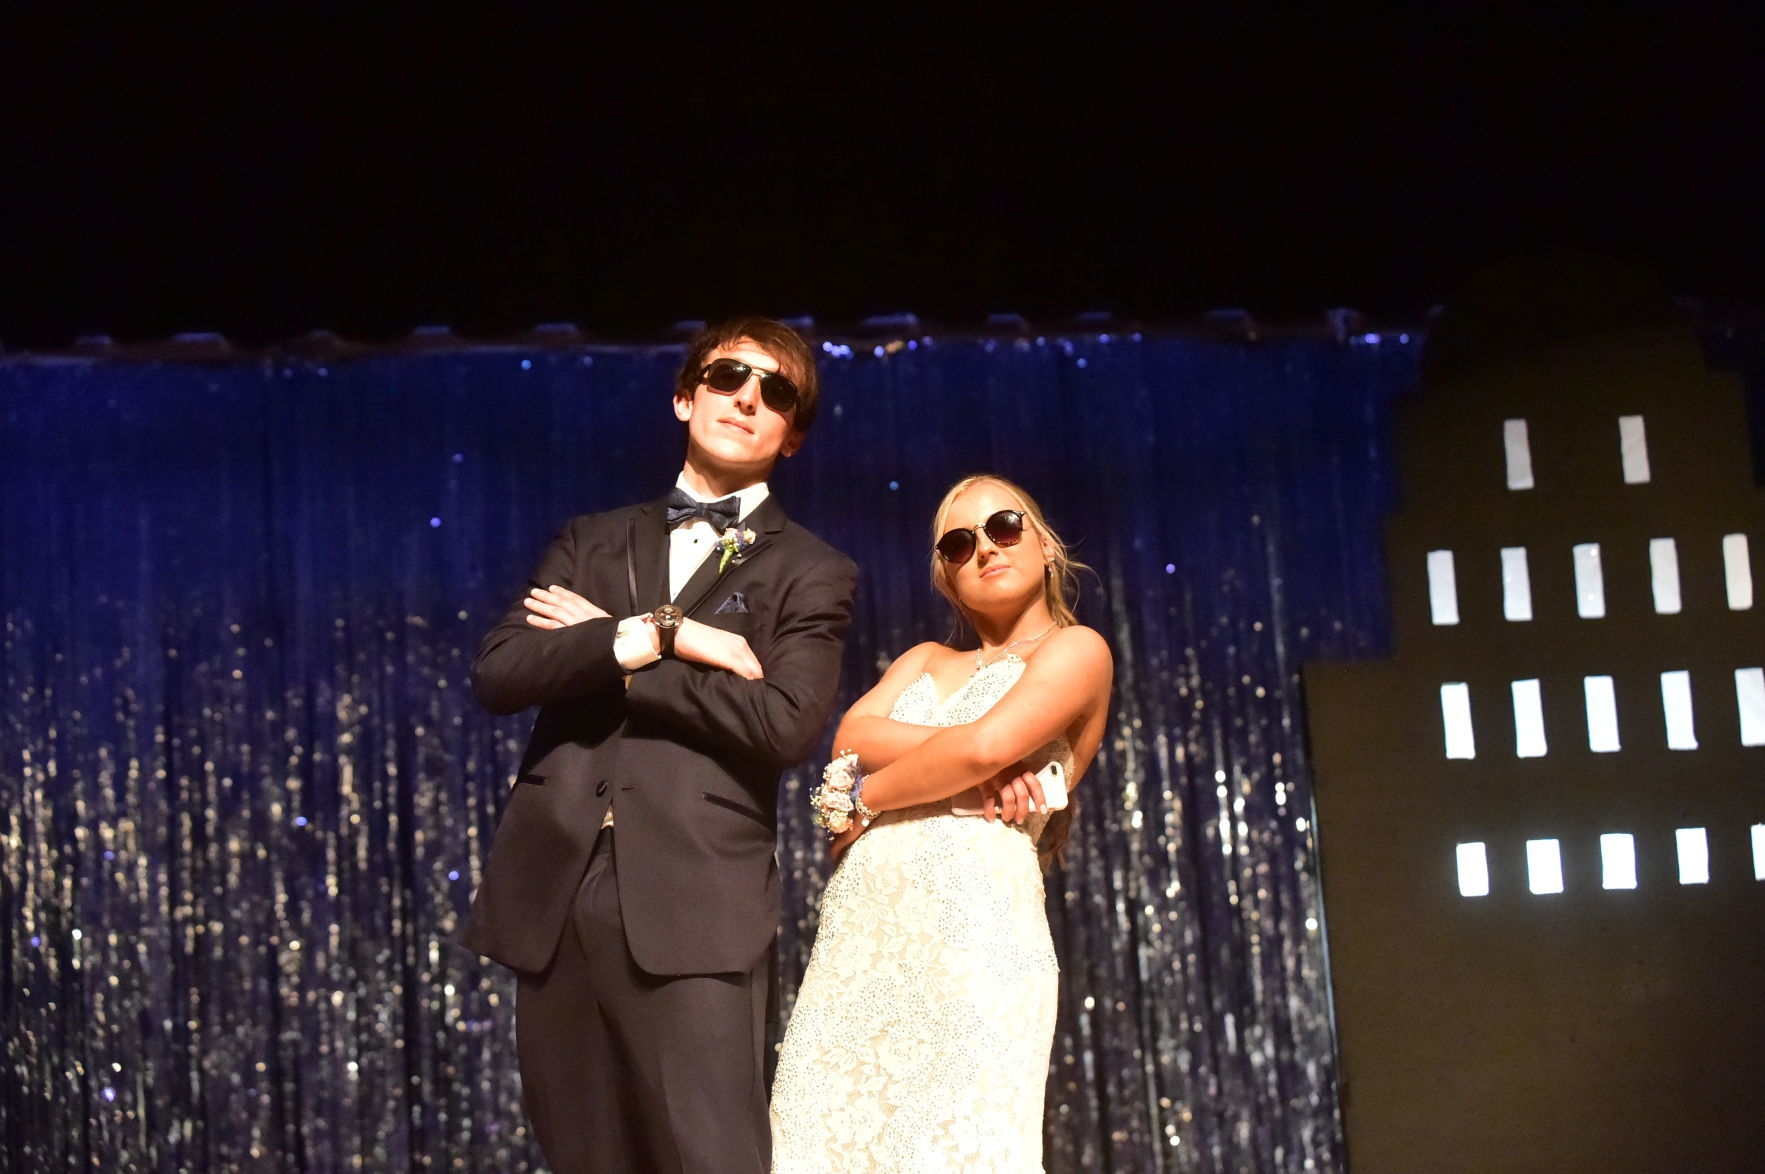 Prom 2019: 'A Night to Remember